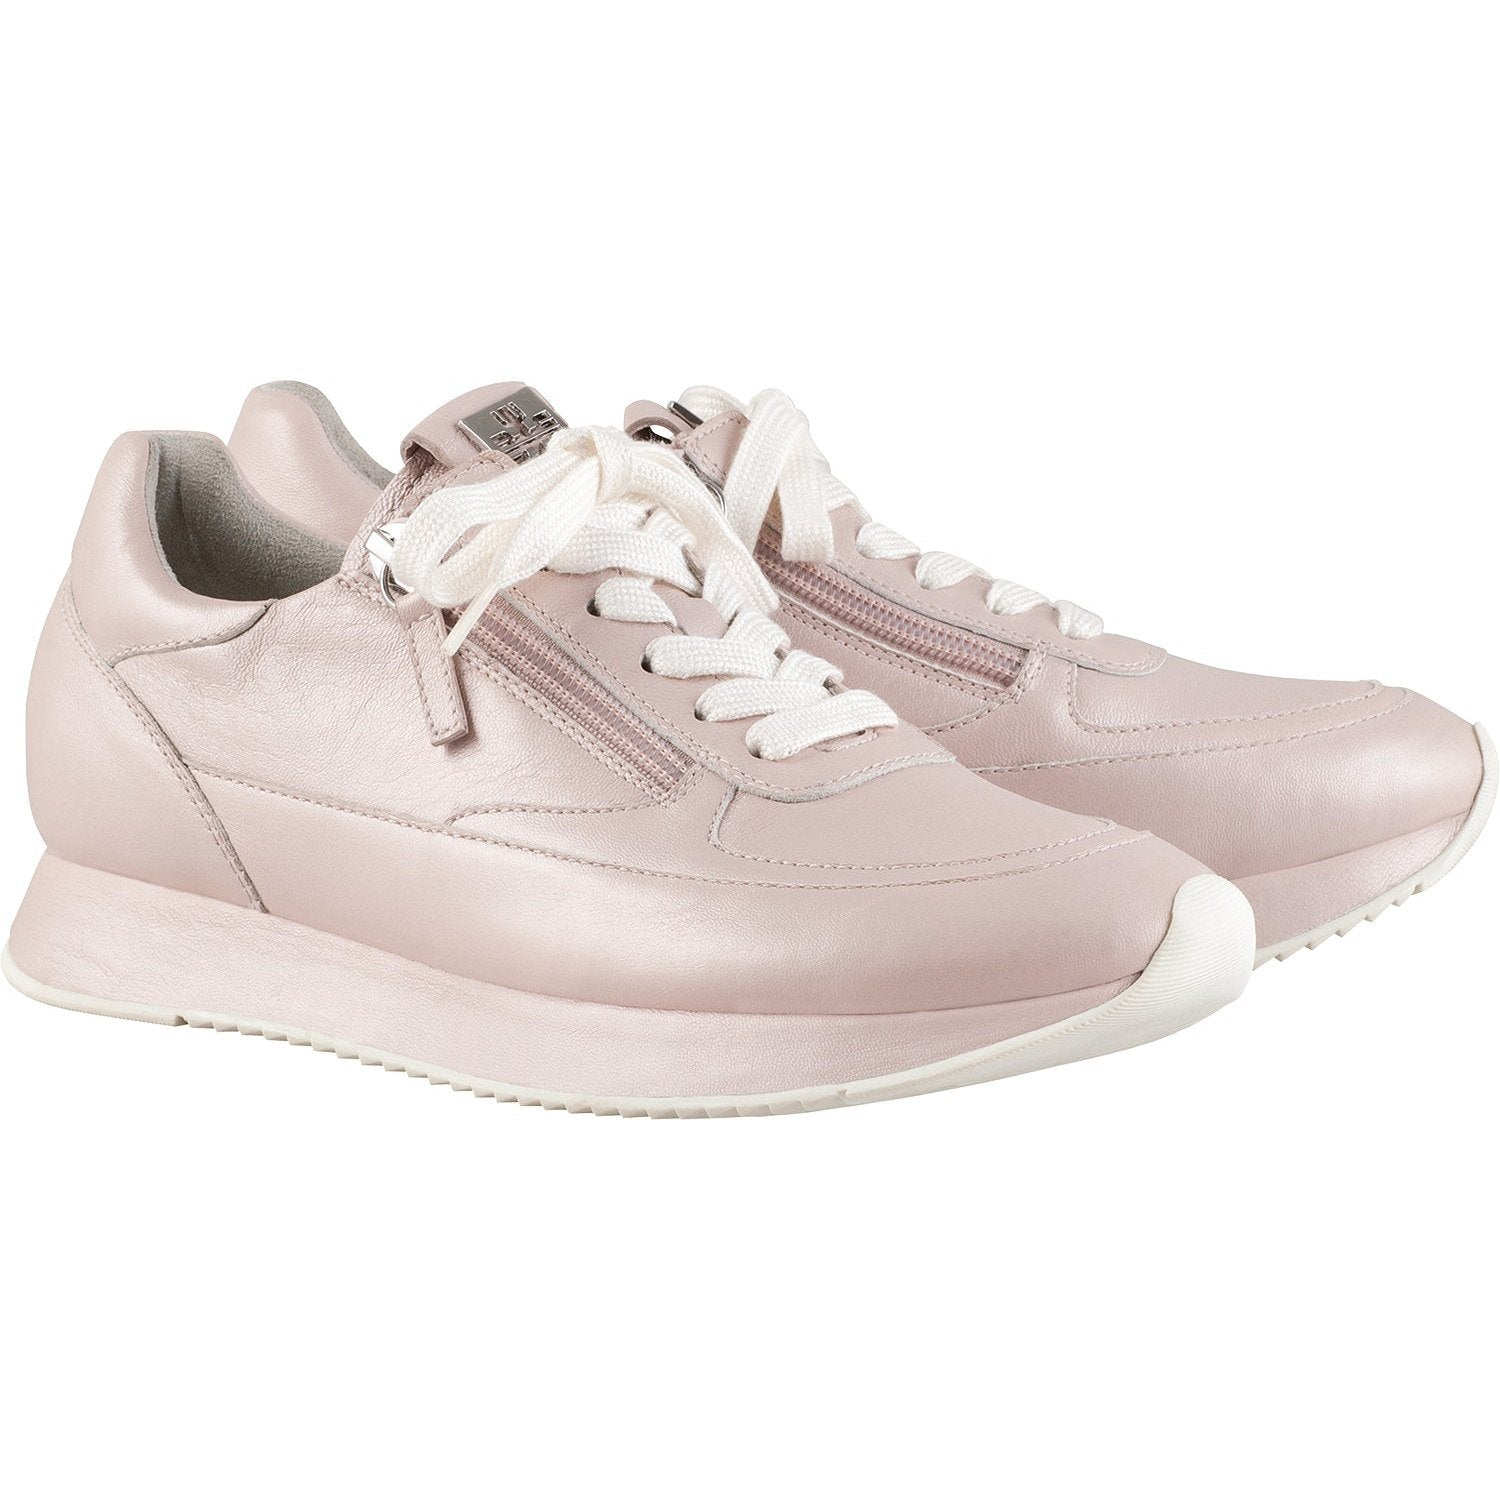 Hogl Womens The Cloud Rose Trainers 9-101321-4700 | Vilbury London